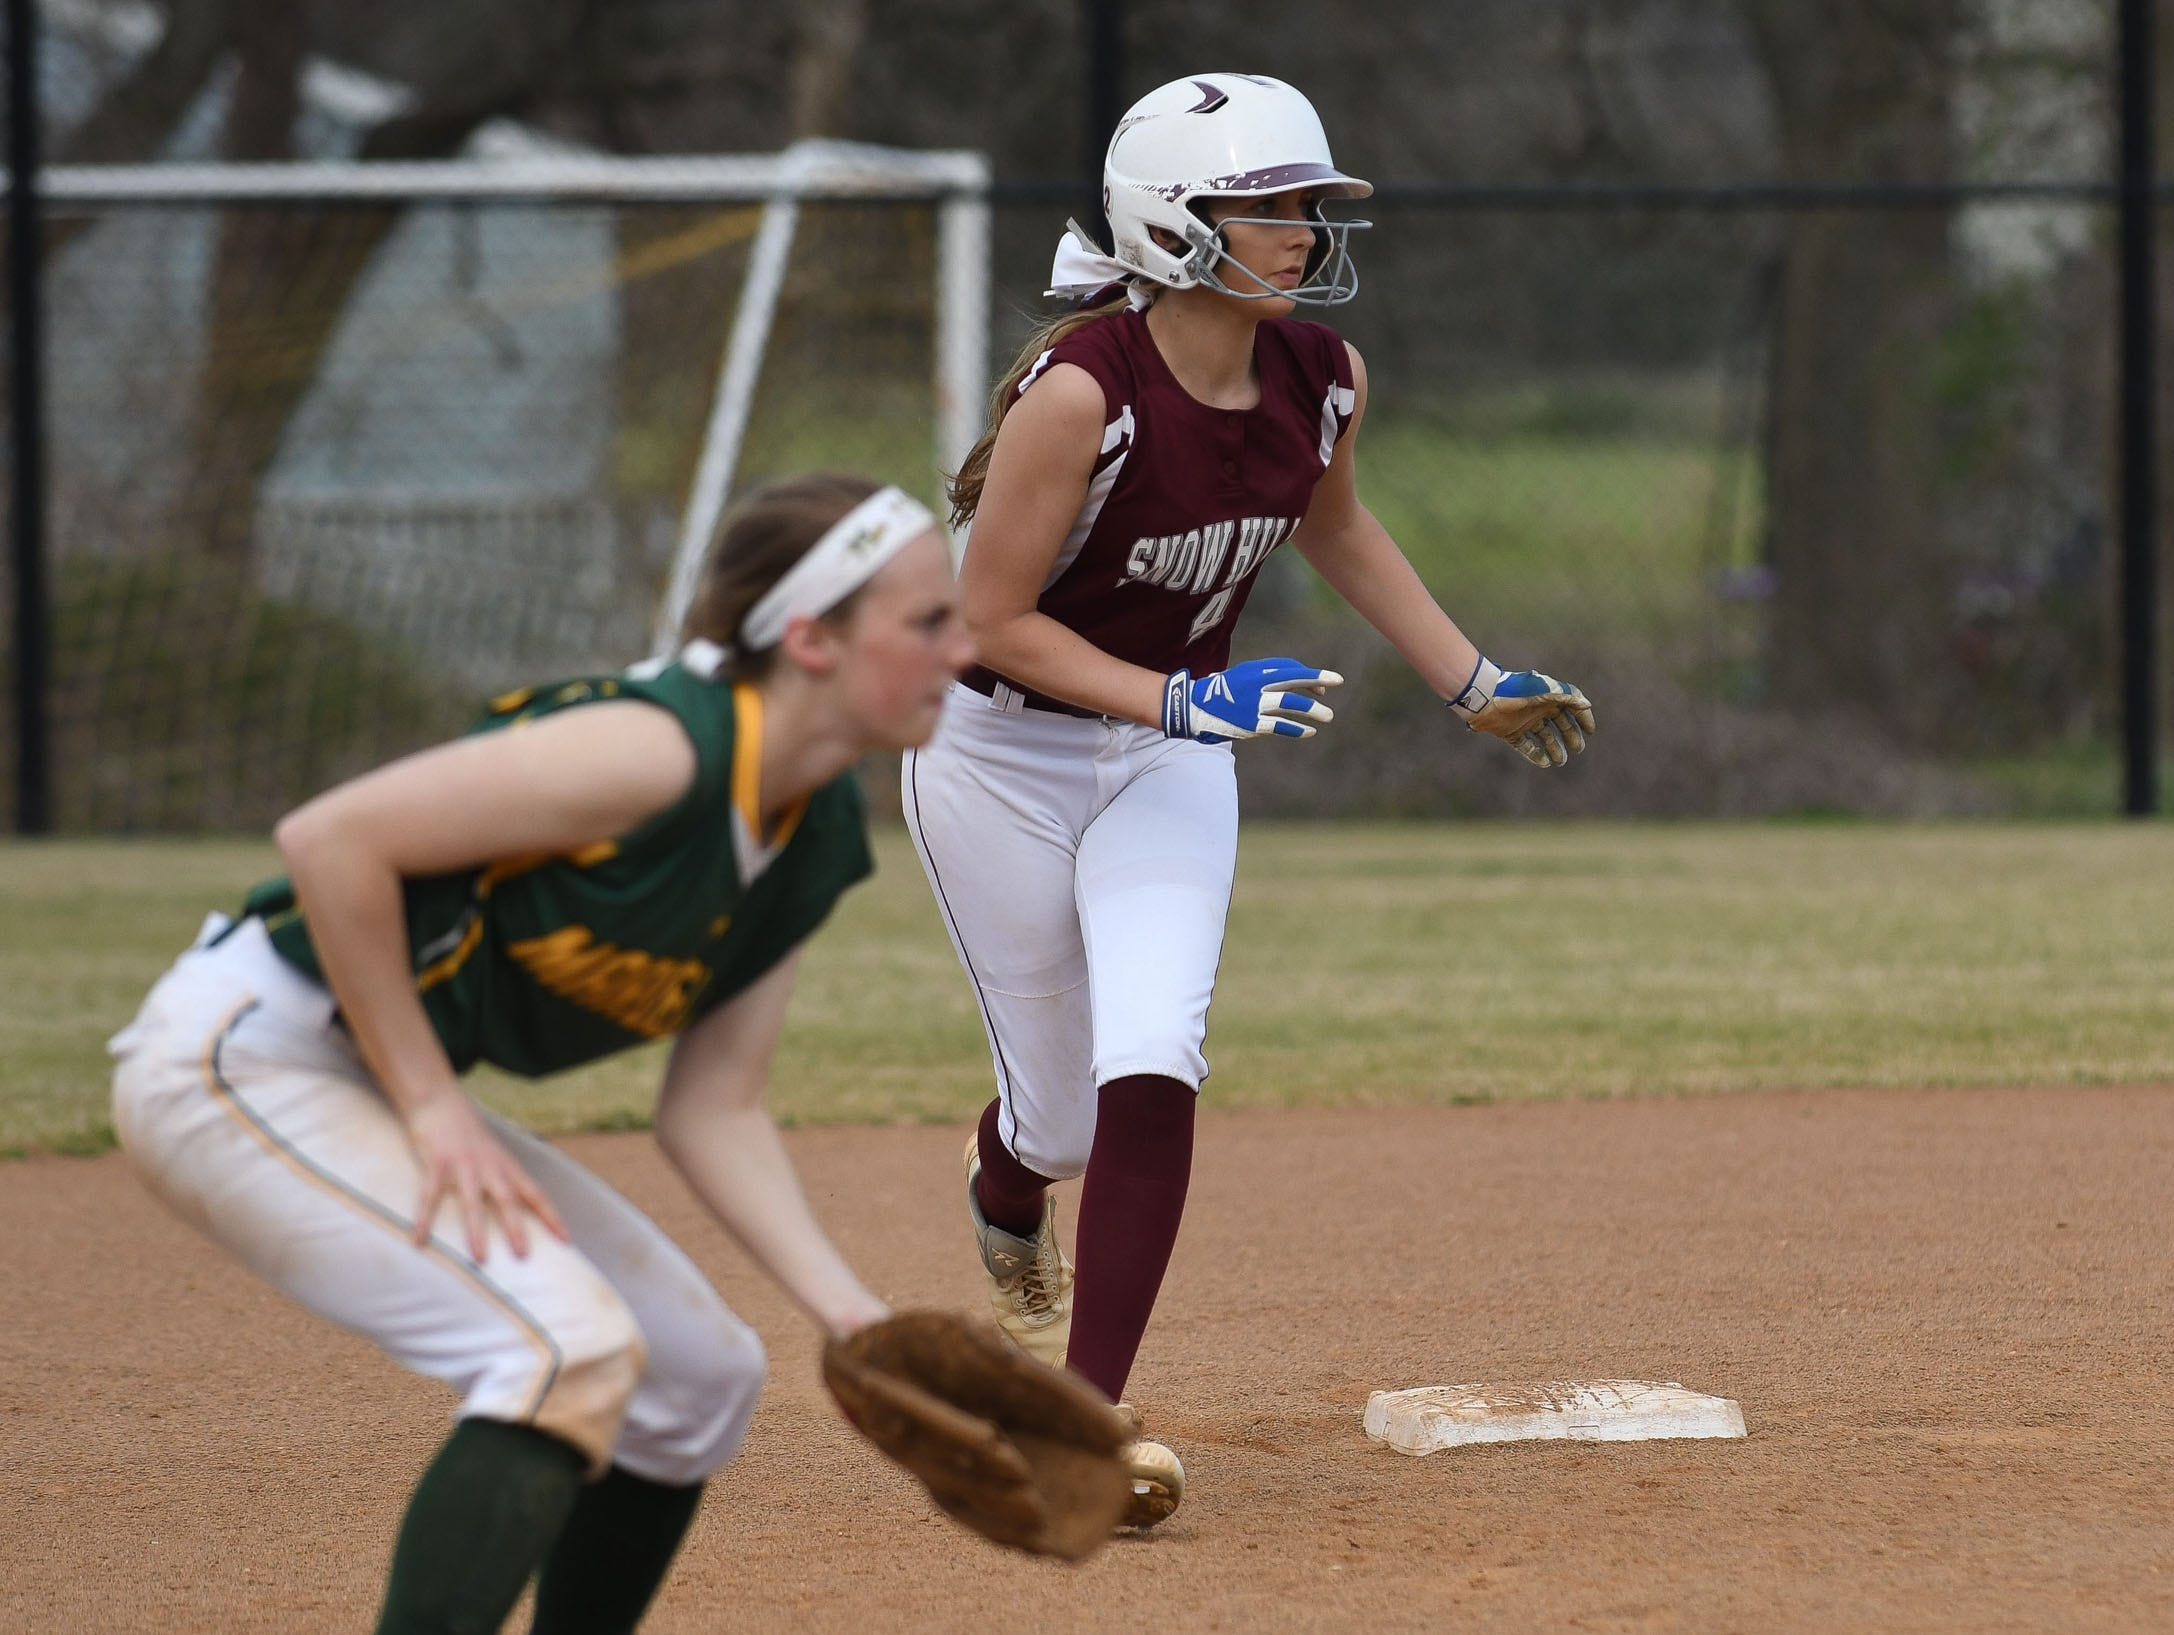 Snow Hill's Lauren Smith on second against Mardela on Monday, April 8, 2019 in Snow Hill, Md.